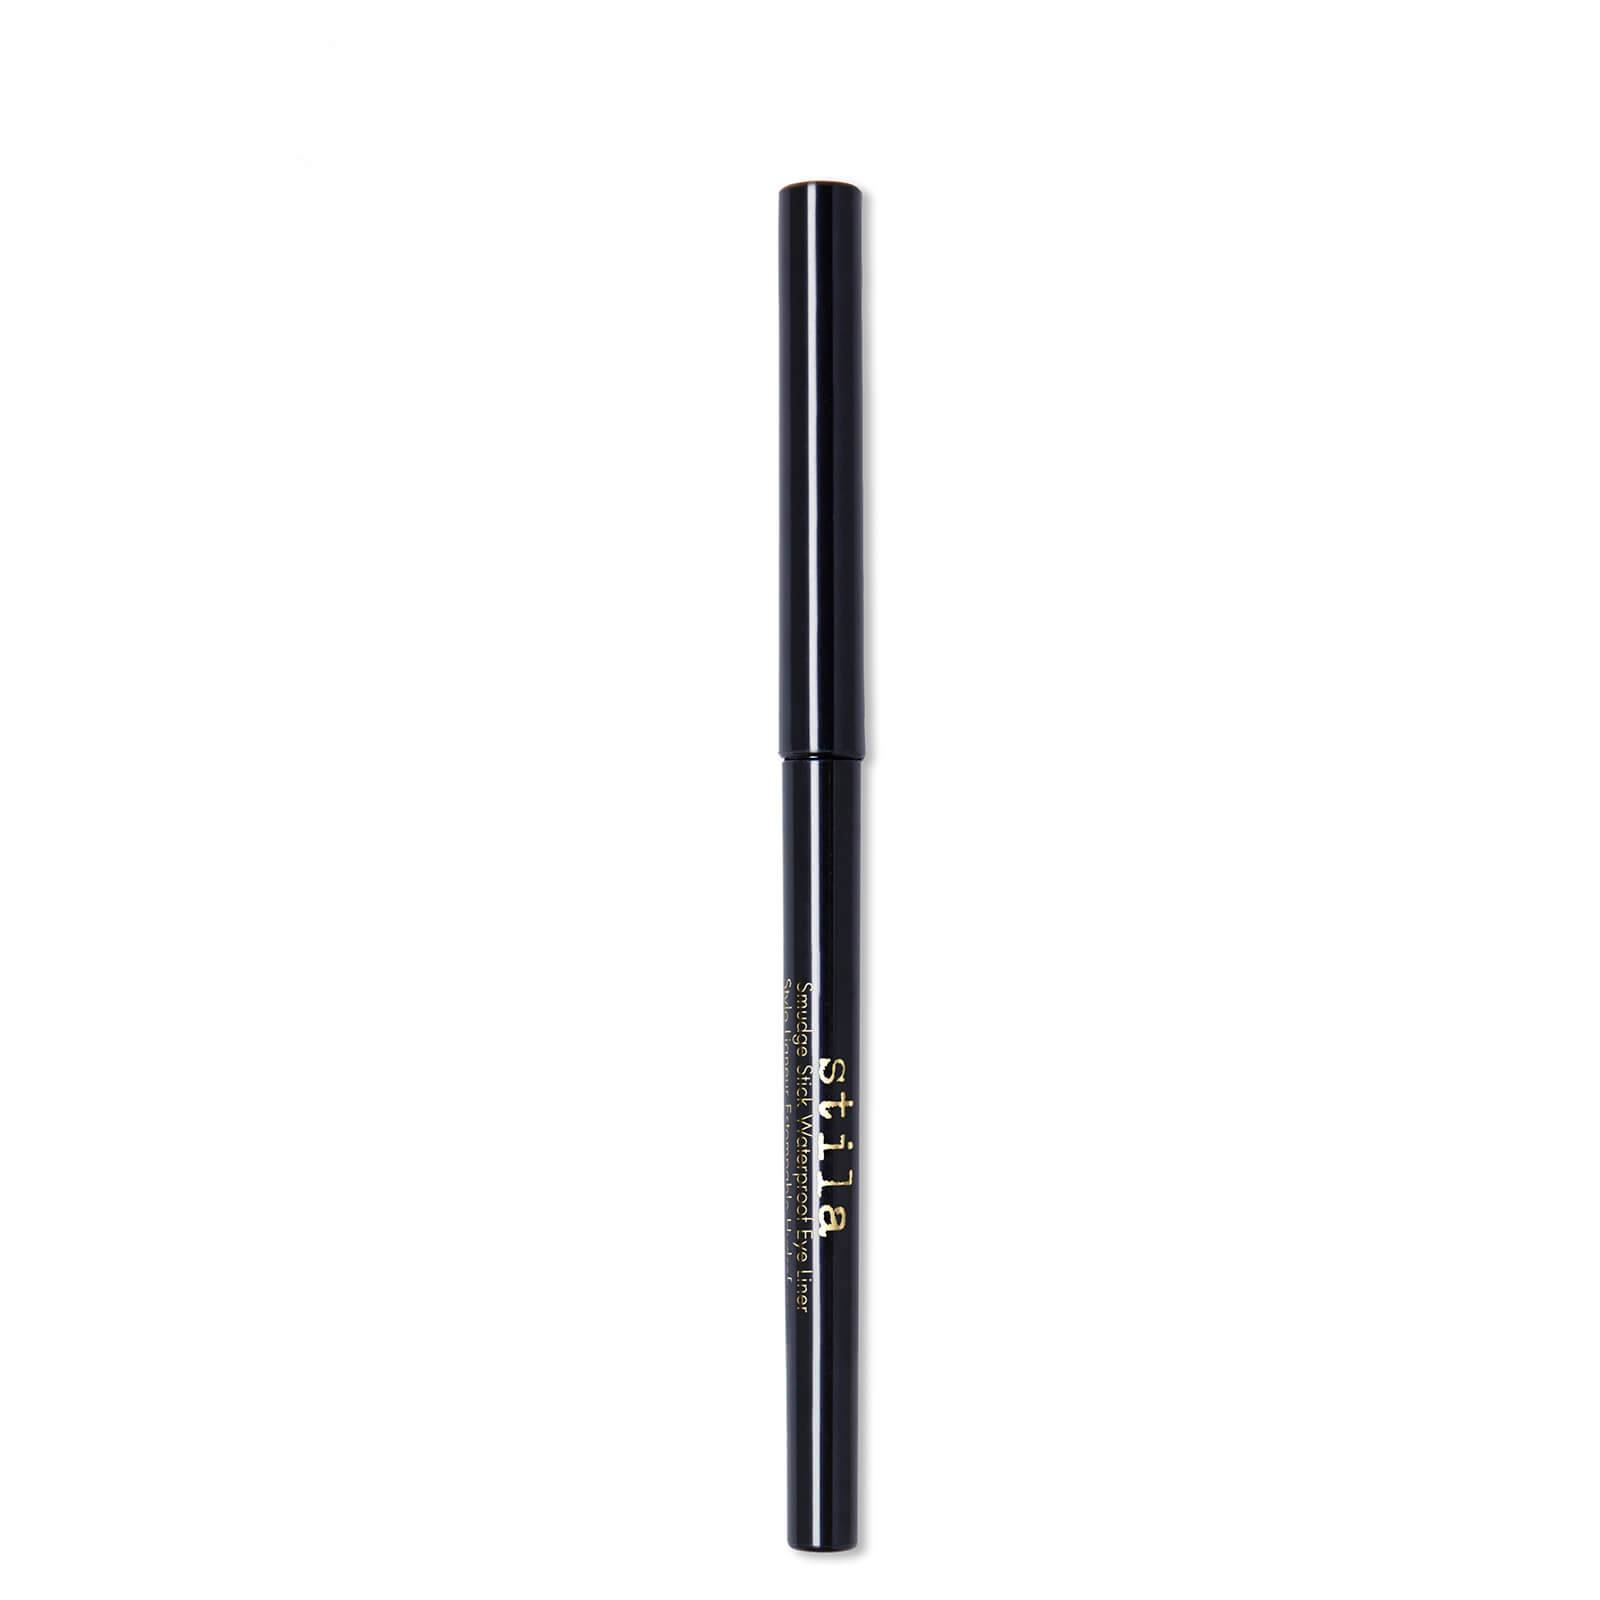 Stila Smudge Stick Waterproof Eye Liner (Various Shades) - Vivid Sapphire